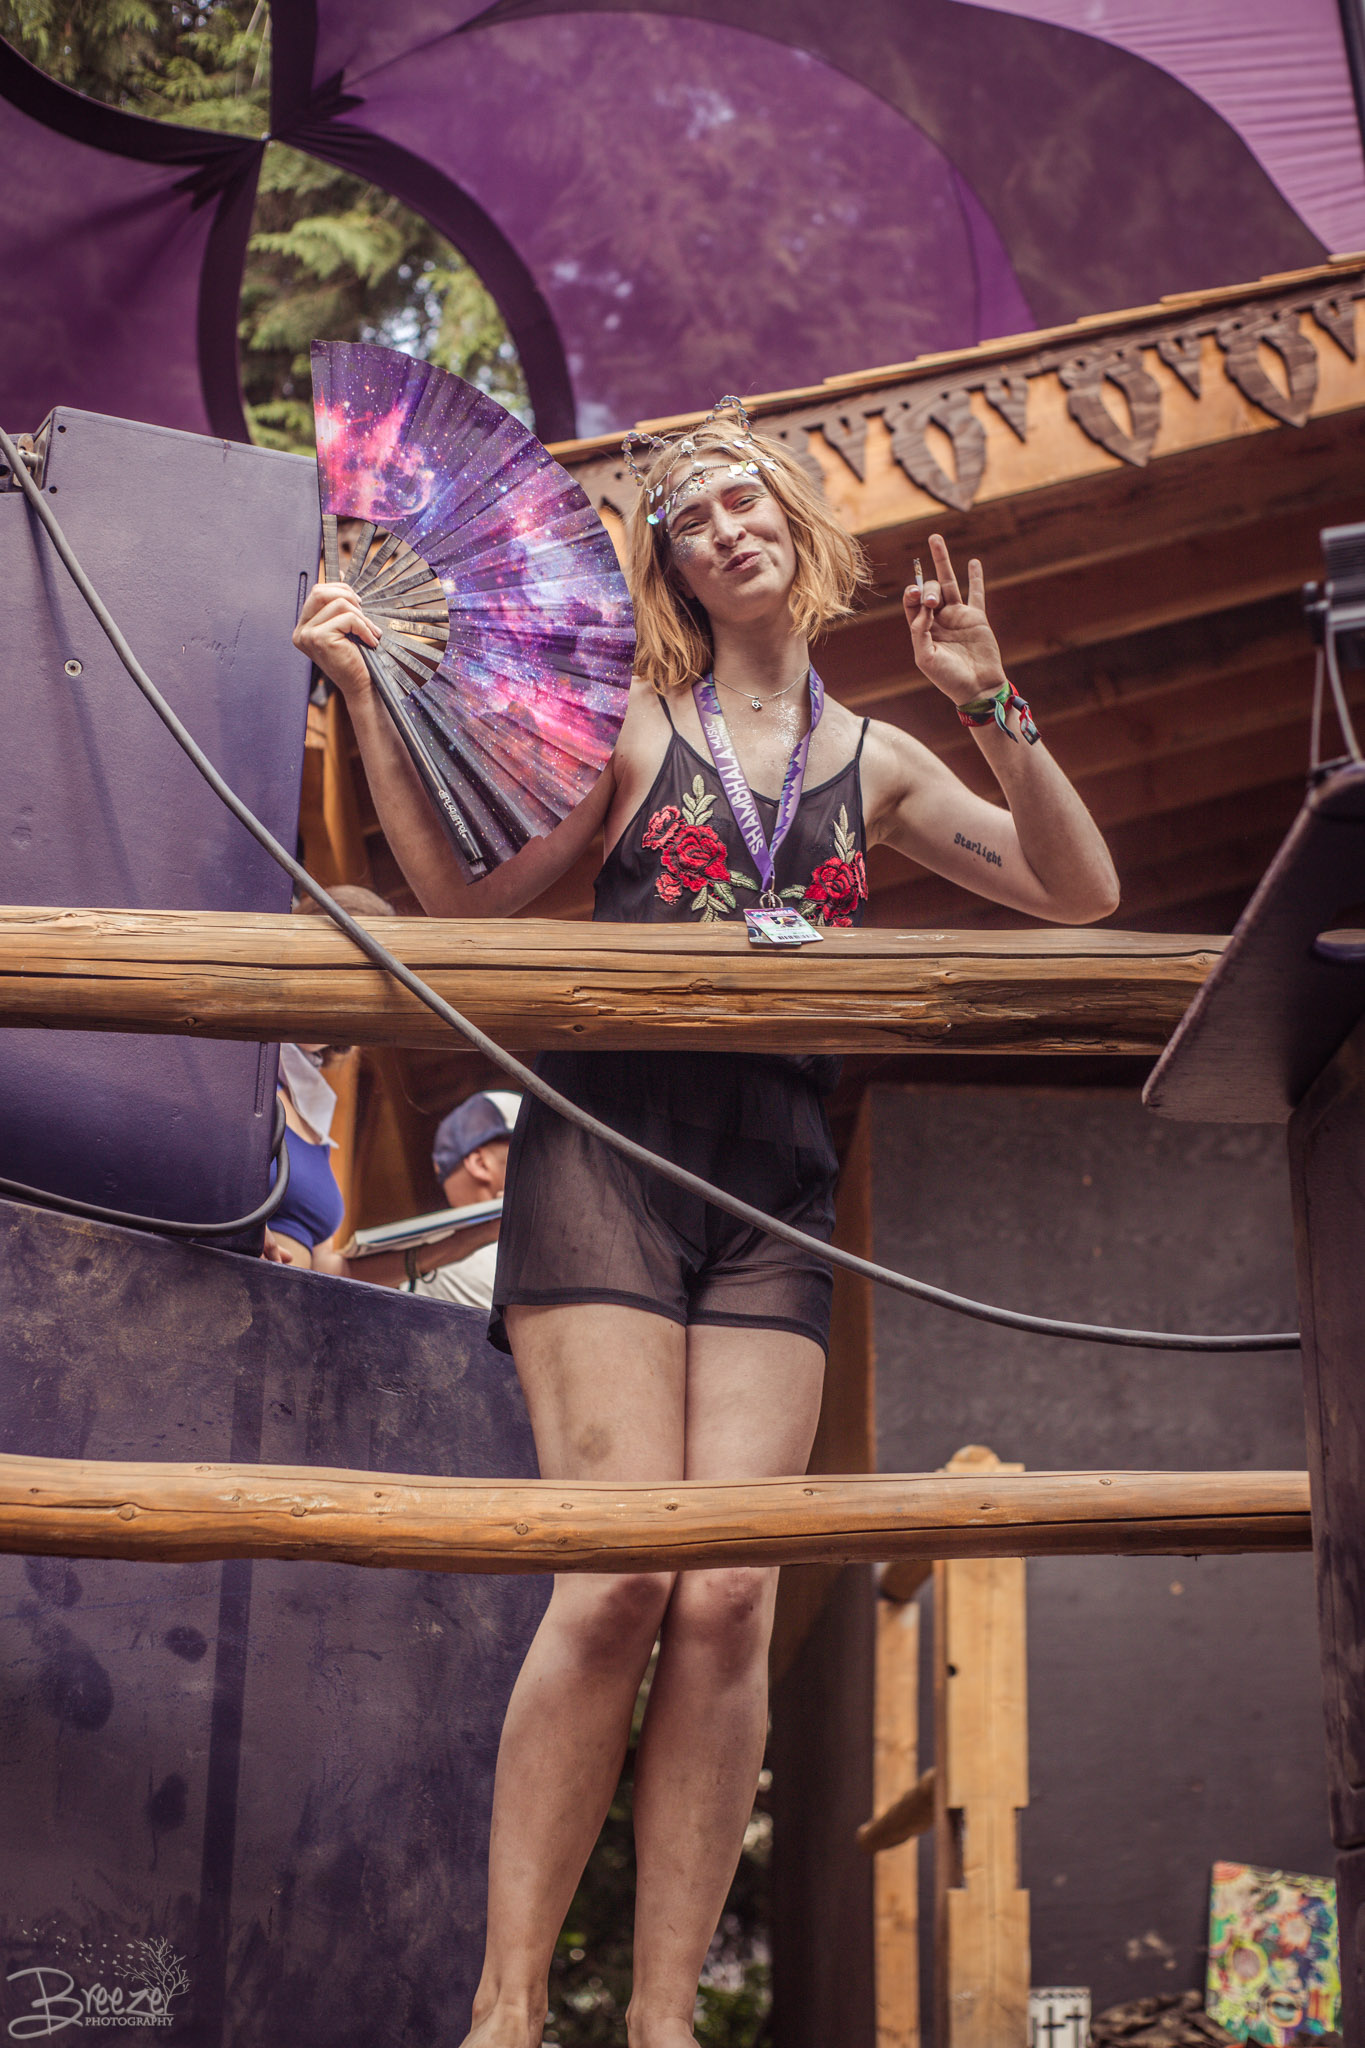 Brie'Ana Breeze Photography & Media - Shambhala 2018-1273.jpg